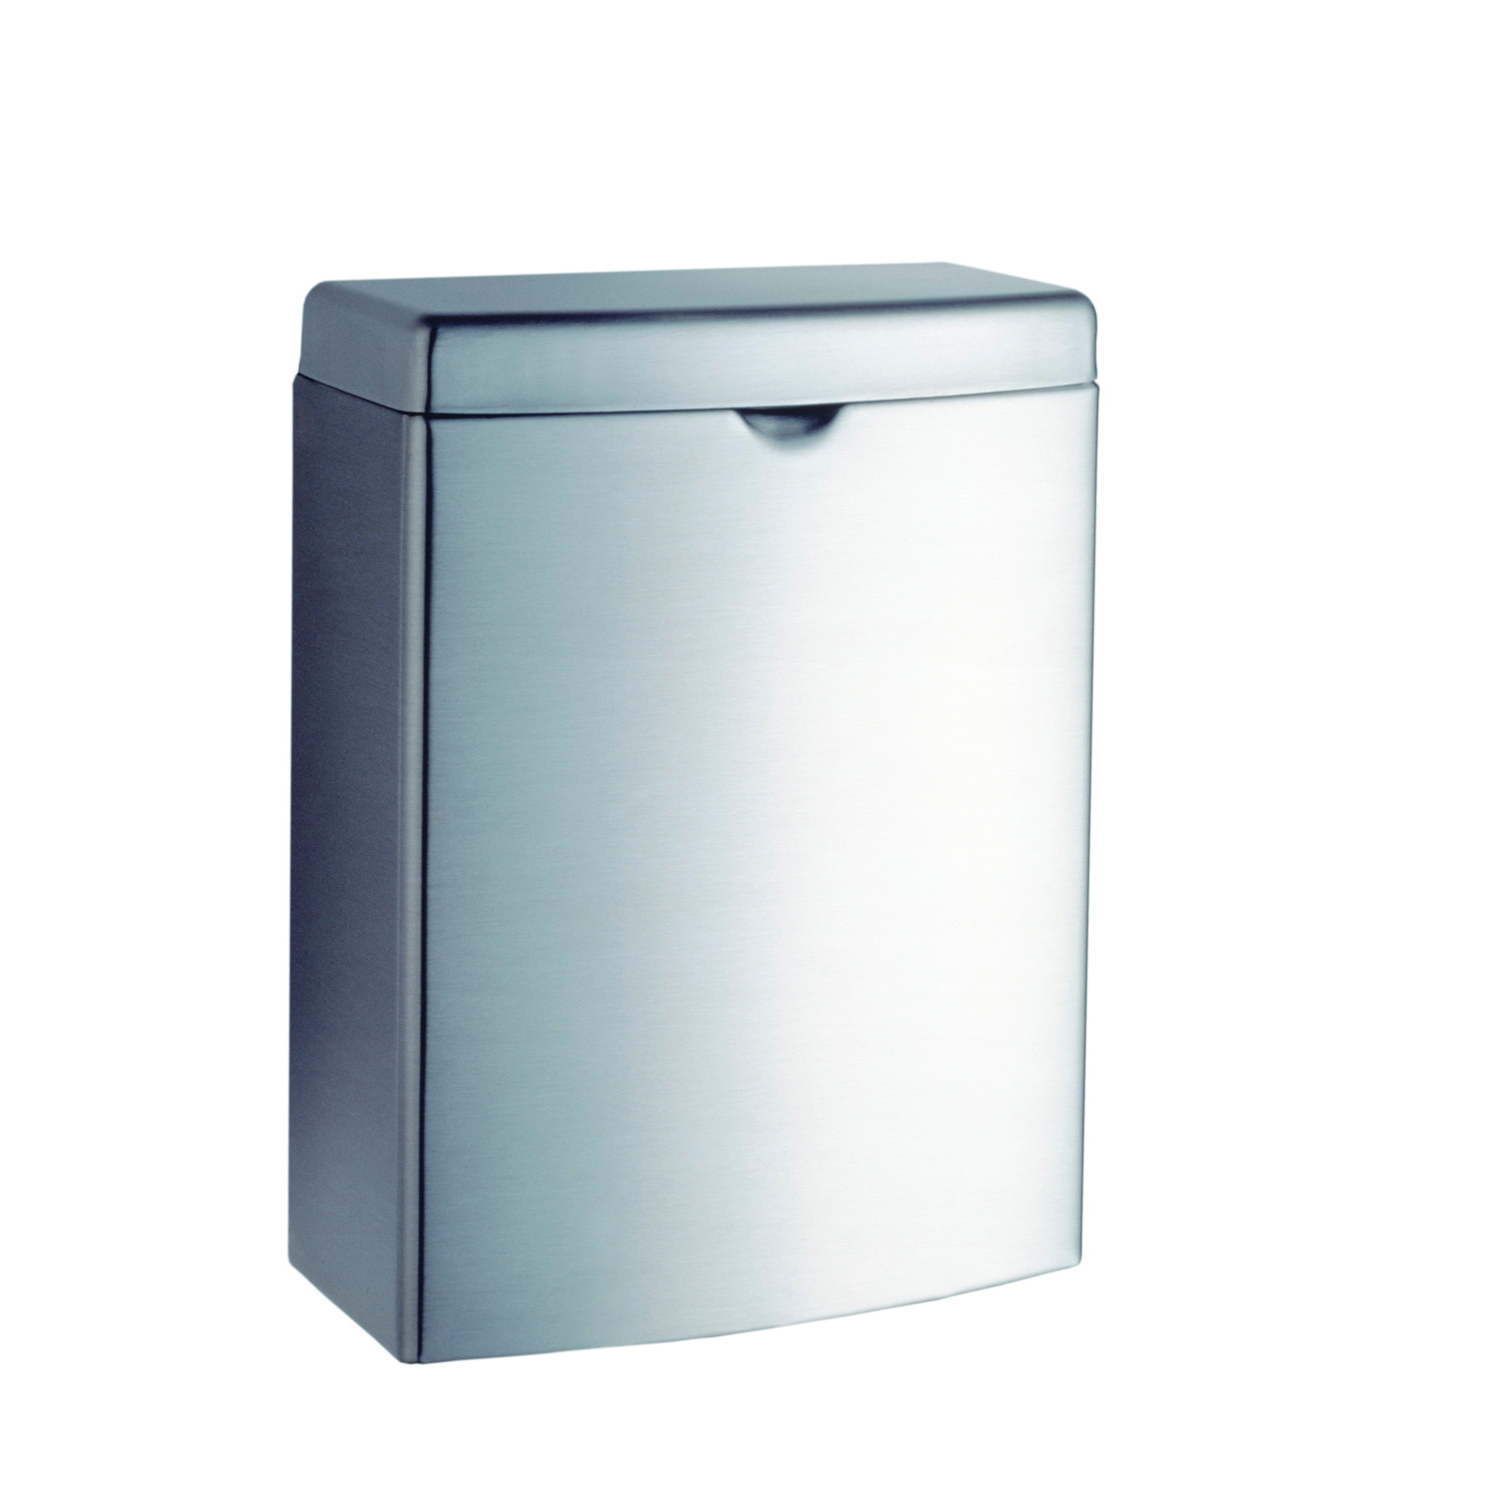 270 Surface Mounted Sanitary Napkin Disposal